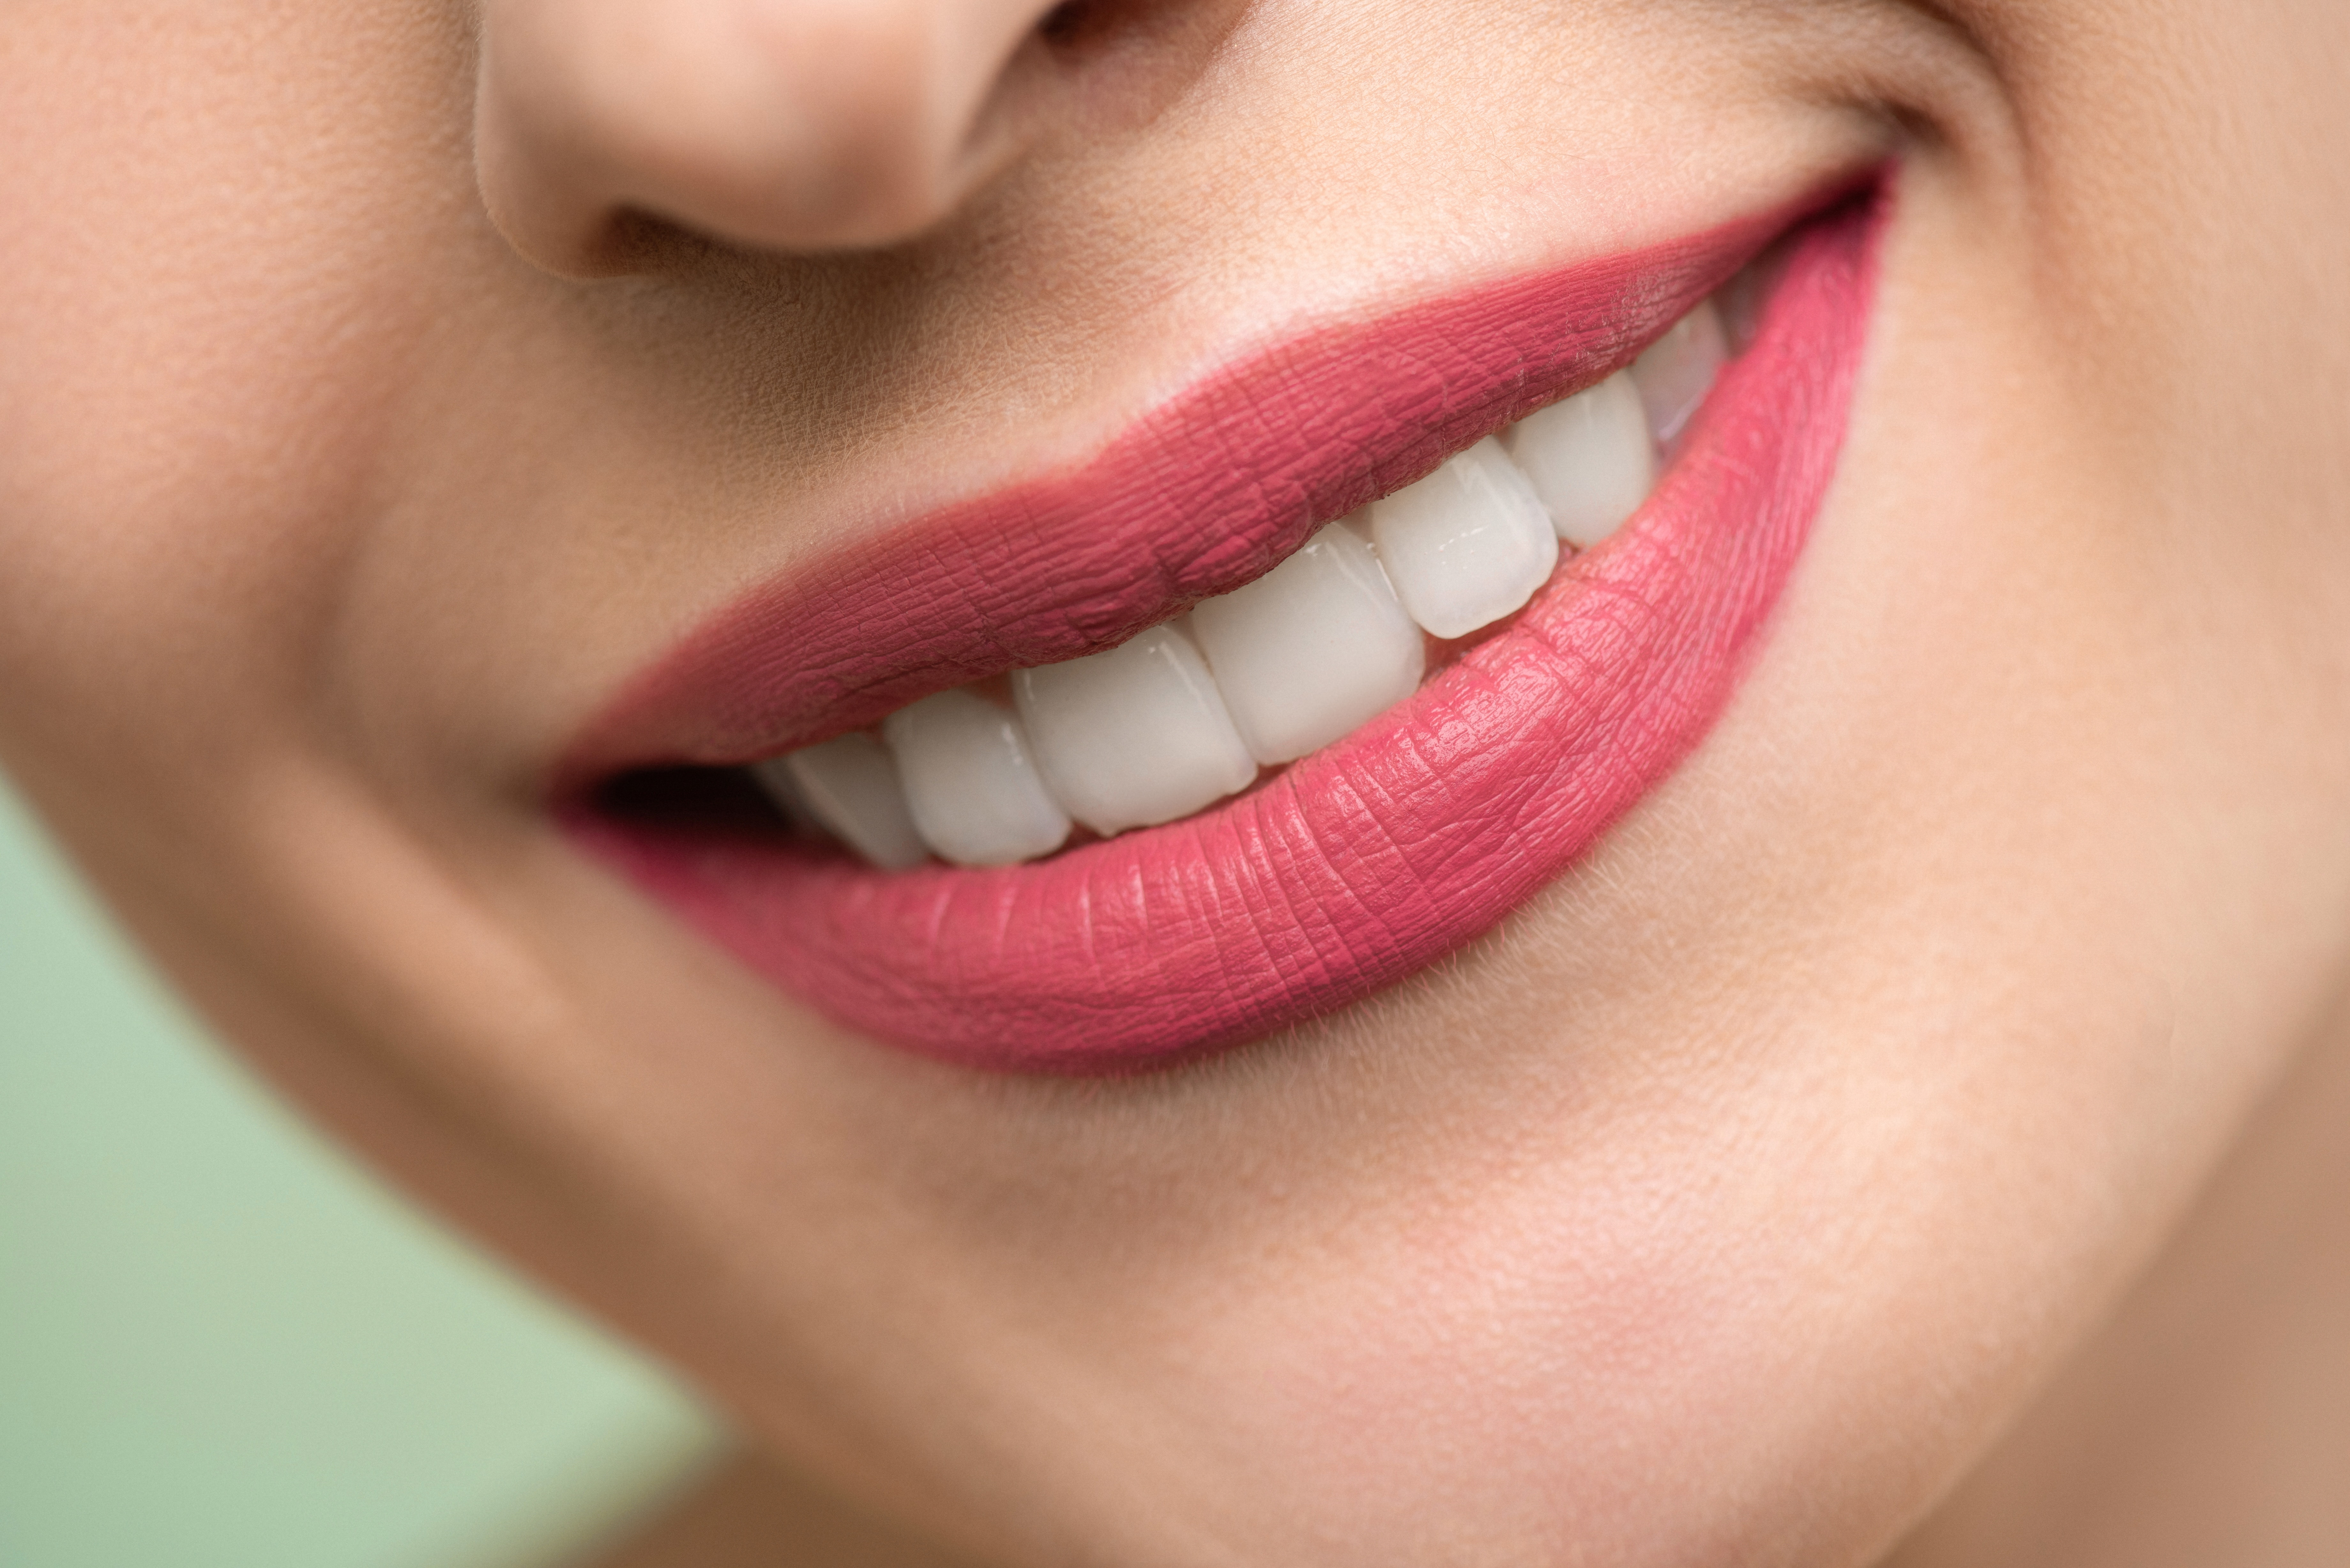 Can Your Chipped or Cracked Tooth Be Repaired?